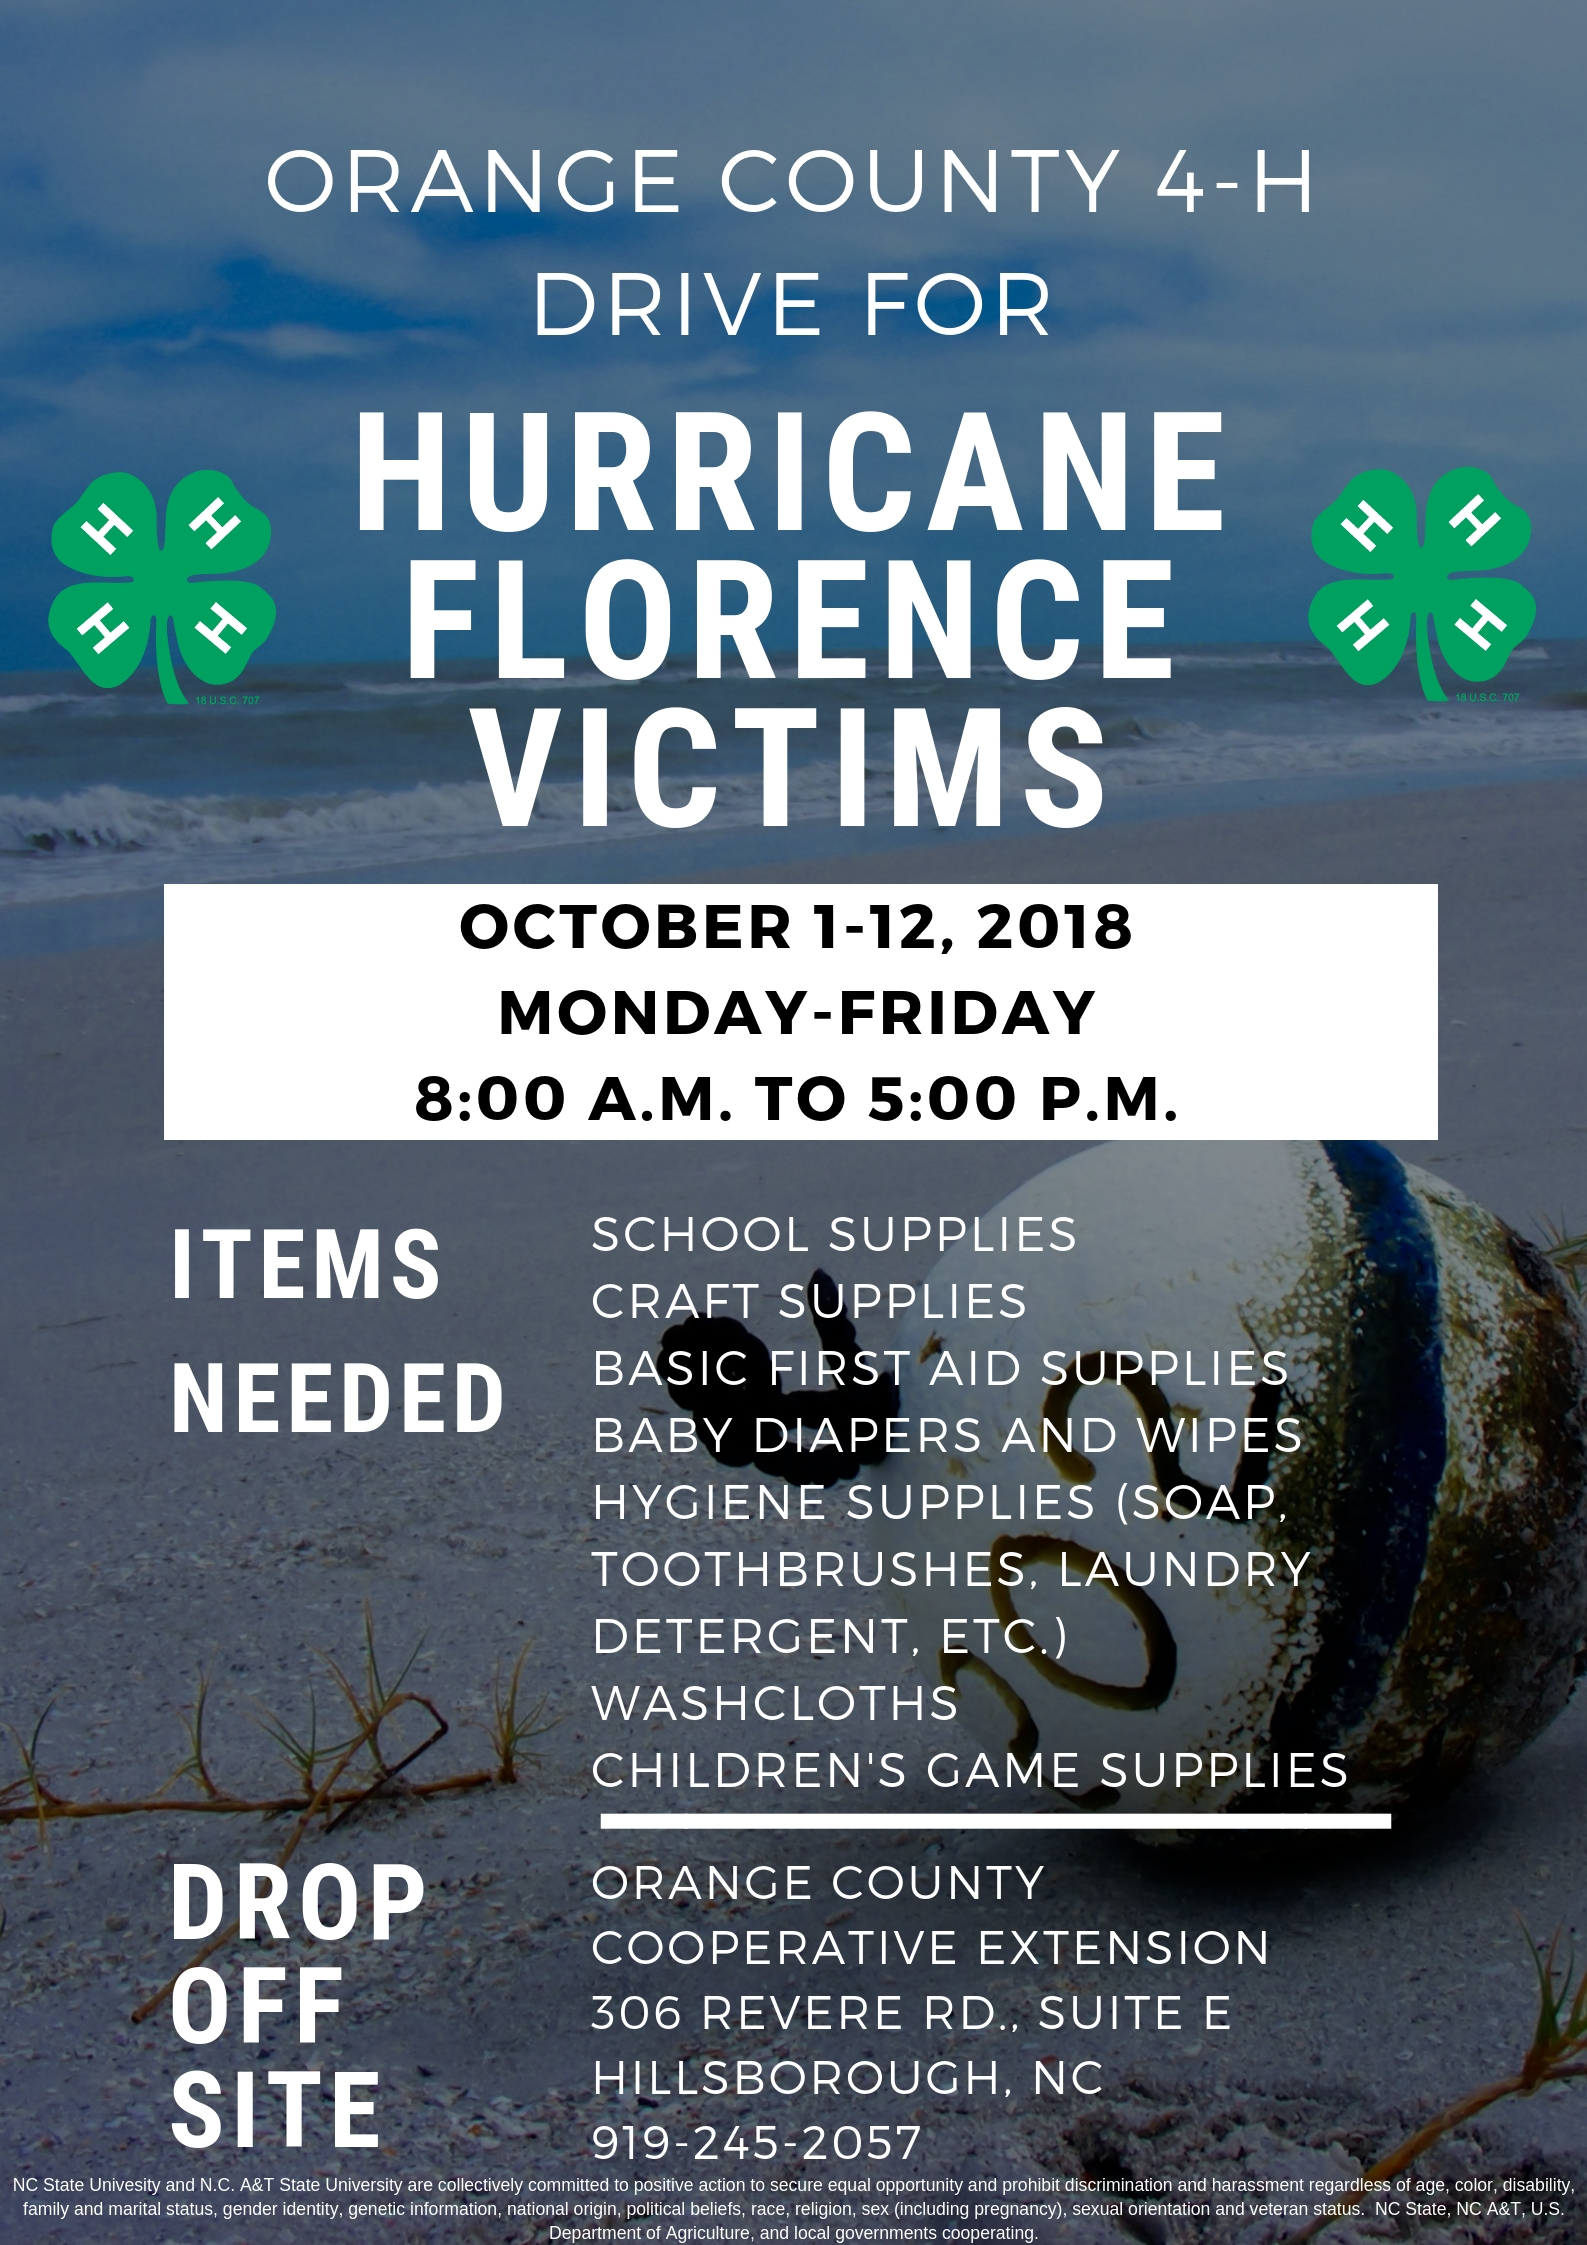 Drive for Hurricane Victims flyer image